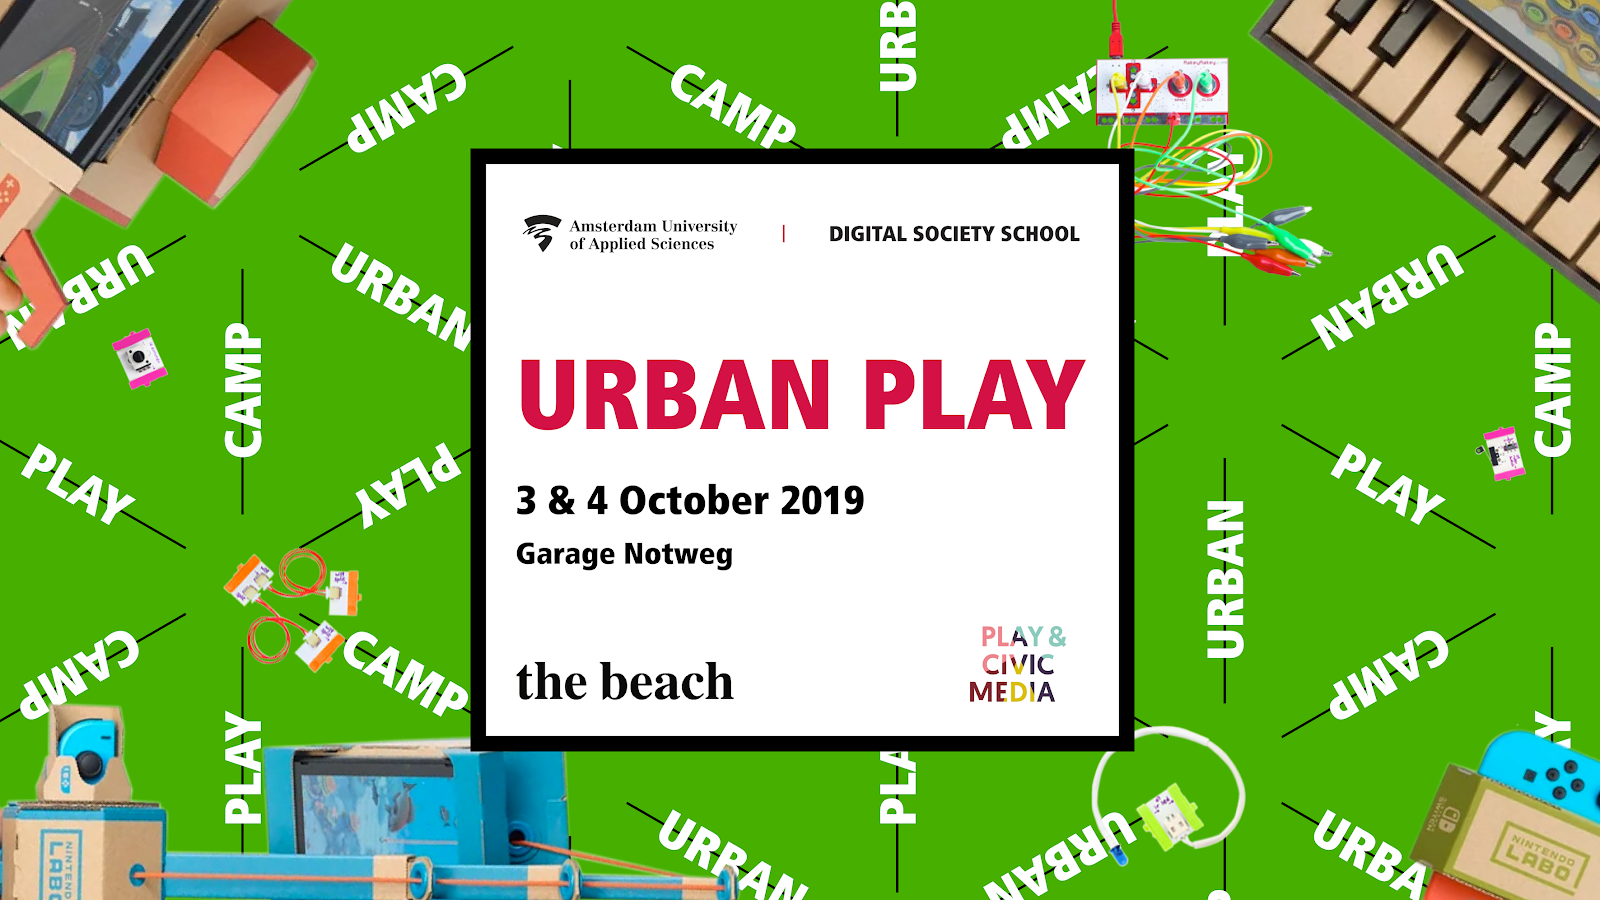 Oct 3-4 DSS/ Trust in Play Urban Play Camp